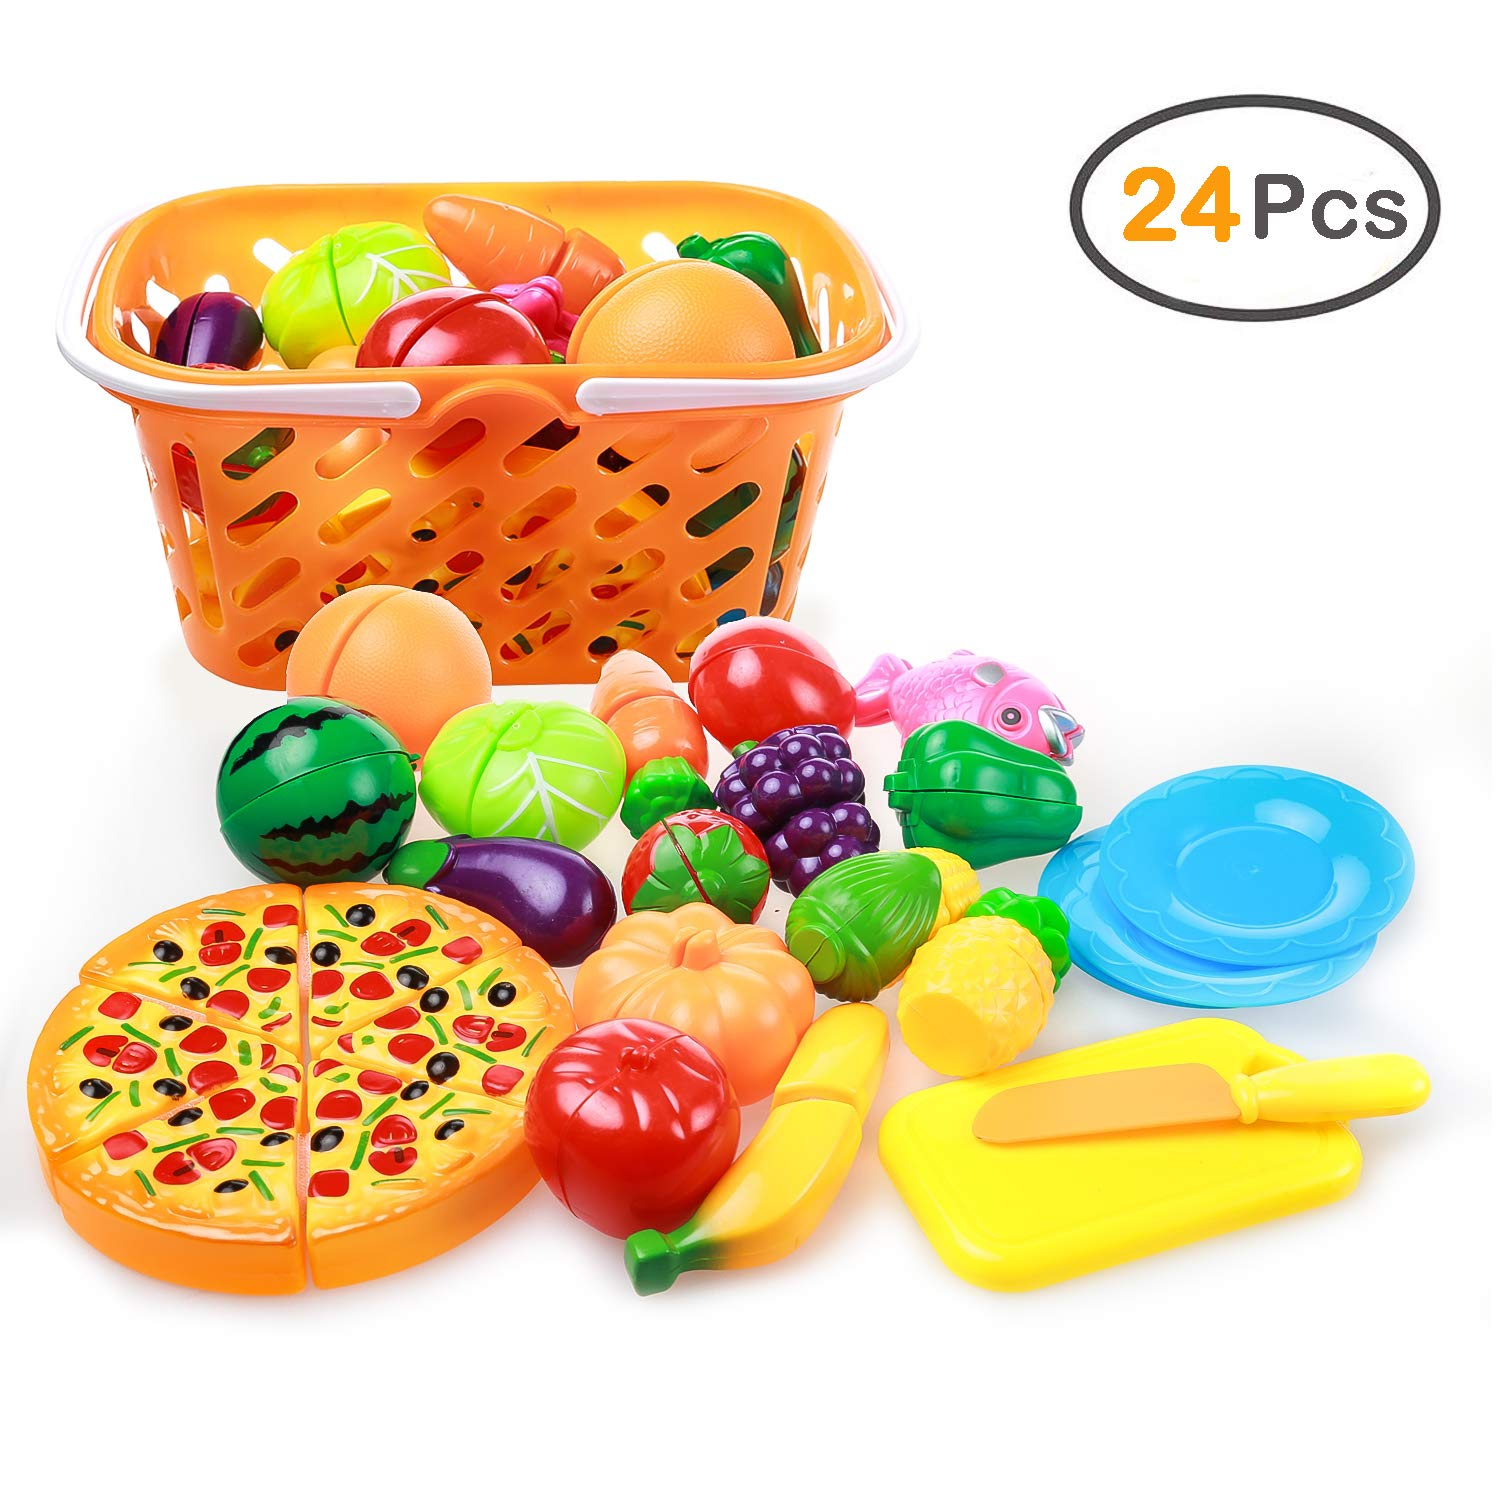 Play Food, ZOUTOG 24 Pieces Cutting Food Set for Kids Kitchen, Cooking Toys with Fruits/Veggies / Pizza/Storage Basket for Toddlers